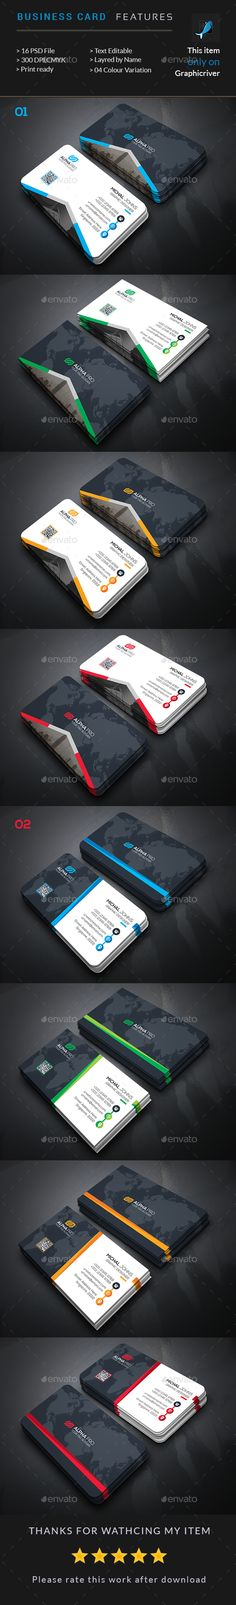 2 Corporate Business Card Template PSD. Download here: http://graphicriver.net/item/corporate-business-card-bundle-2-in-1/16854017?ref=ksioks